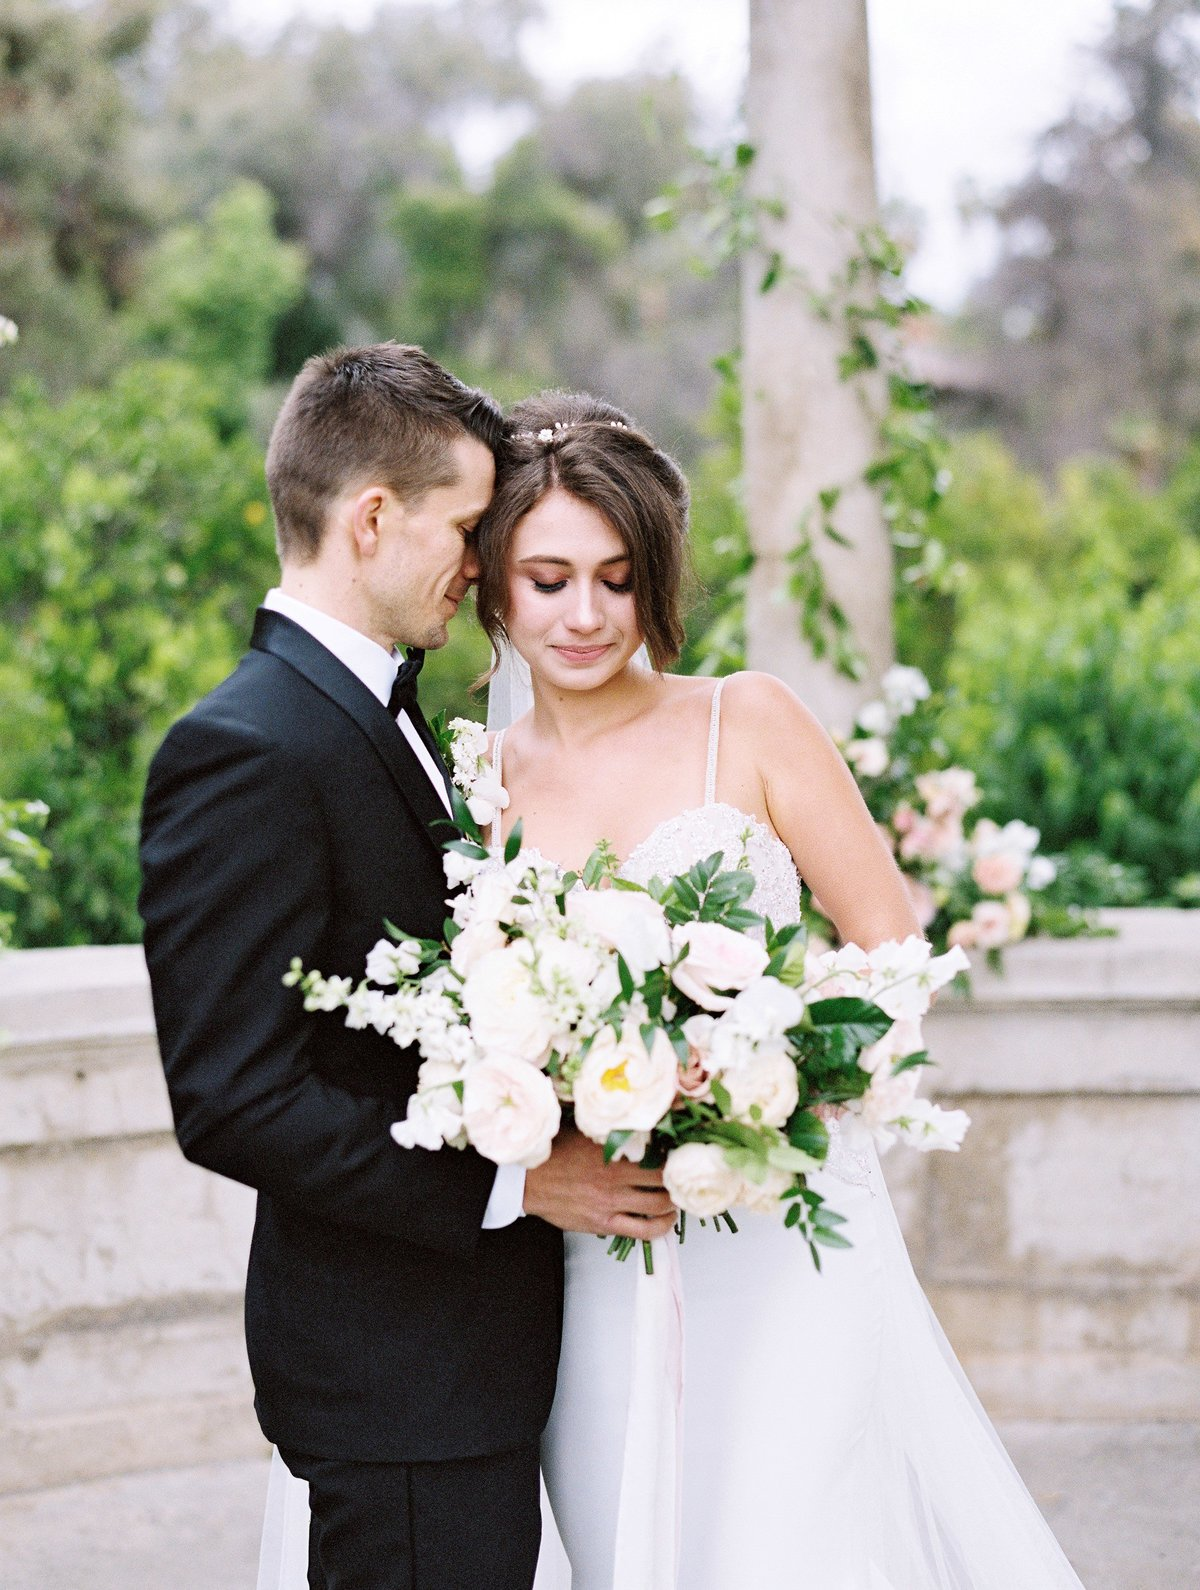 daniel-and-bethany-weddings-bride-groom-with-bouquet